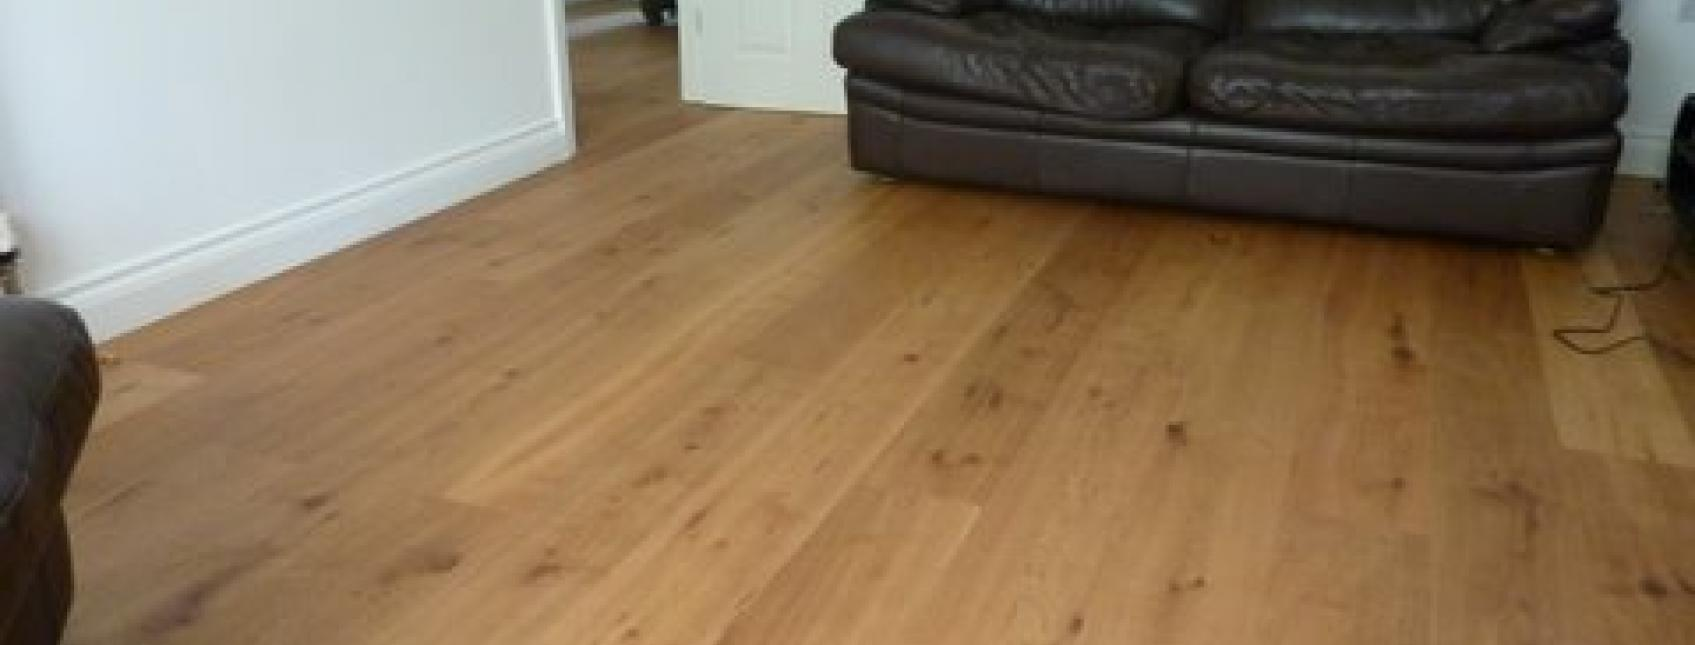 Contemporary wood flooring in a modern lounge